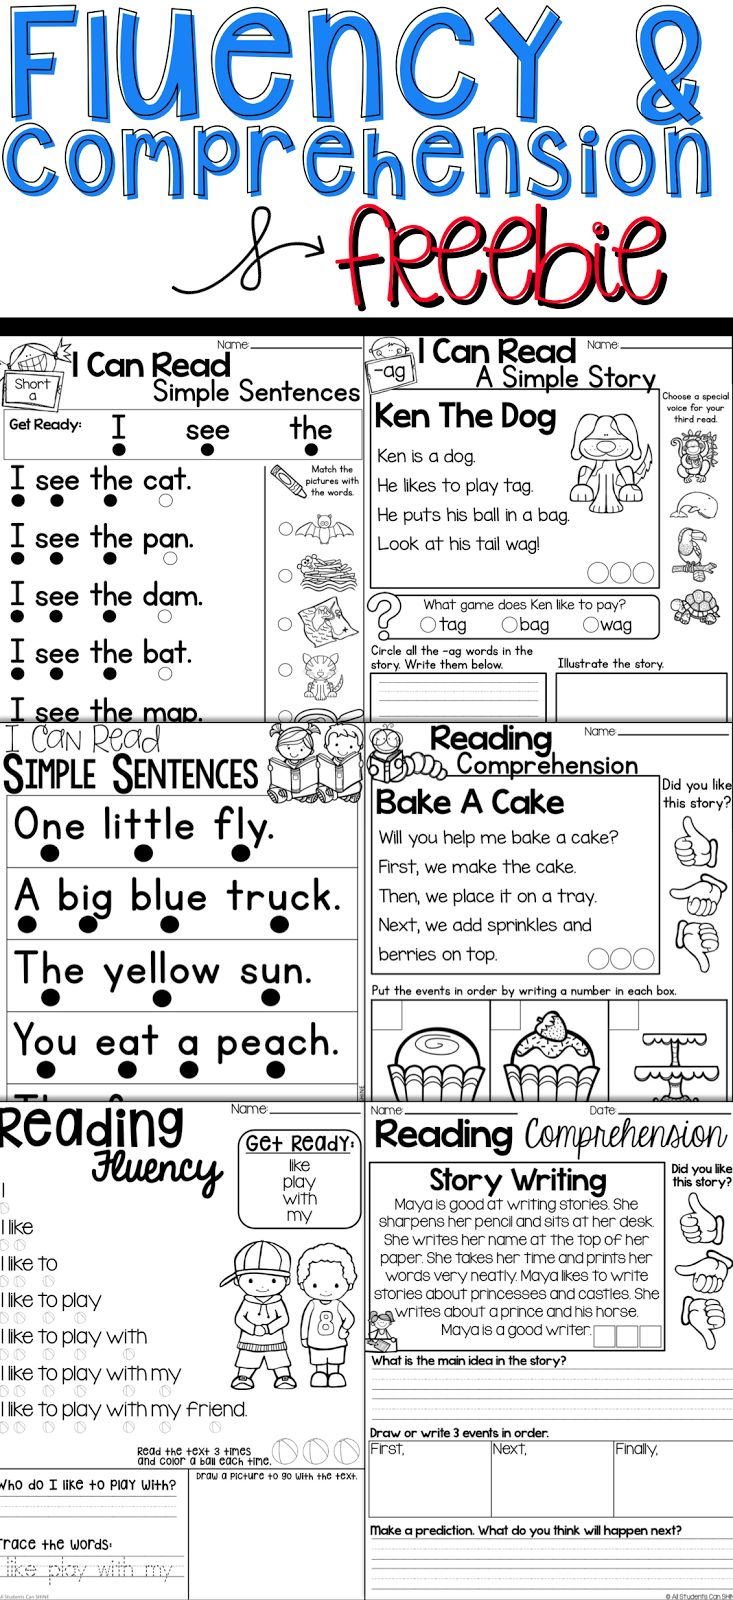 1140 best Grade 1/2 Literacy images on Pinterest | School, Green ...